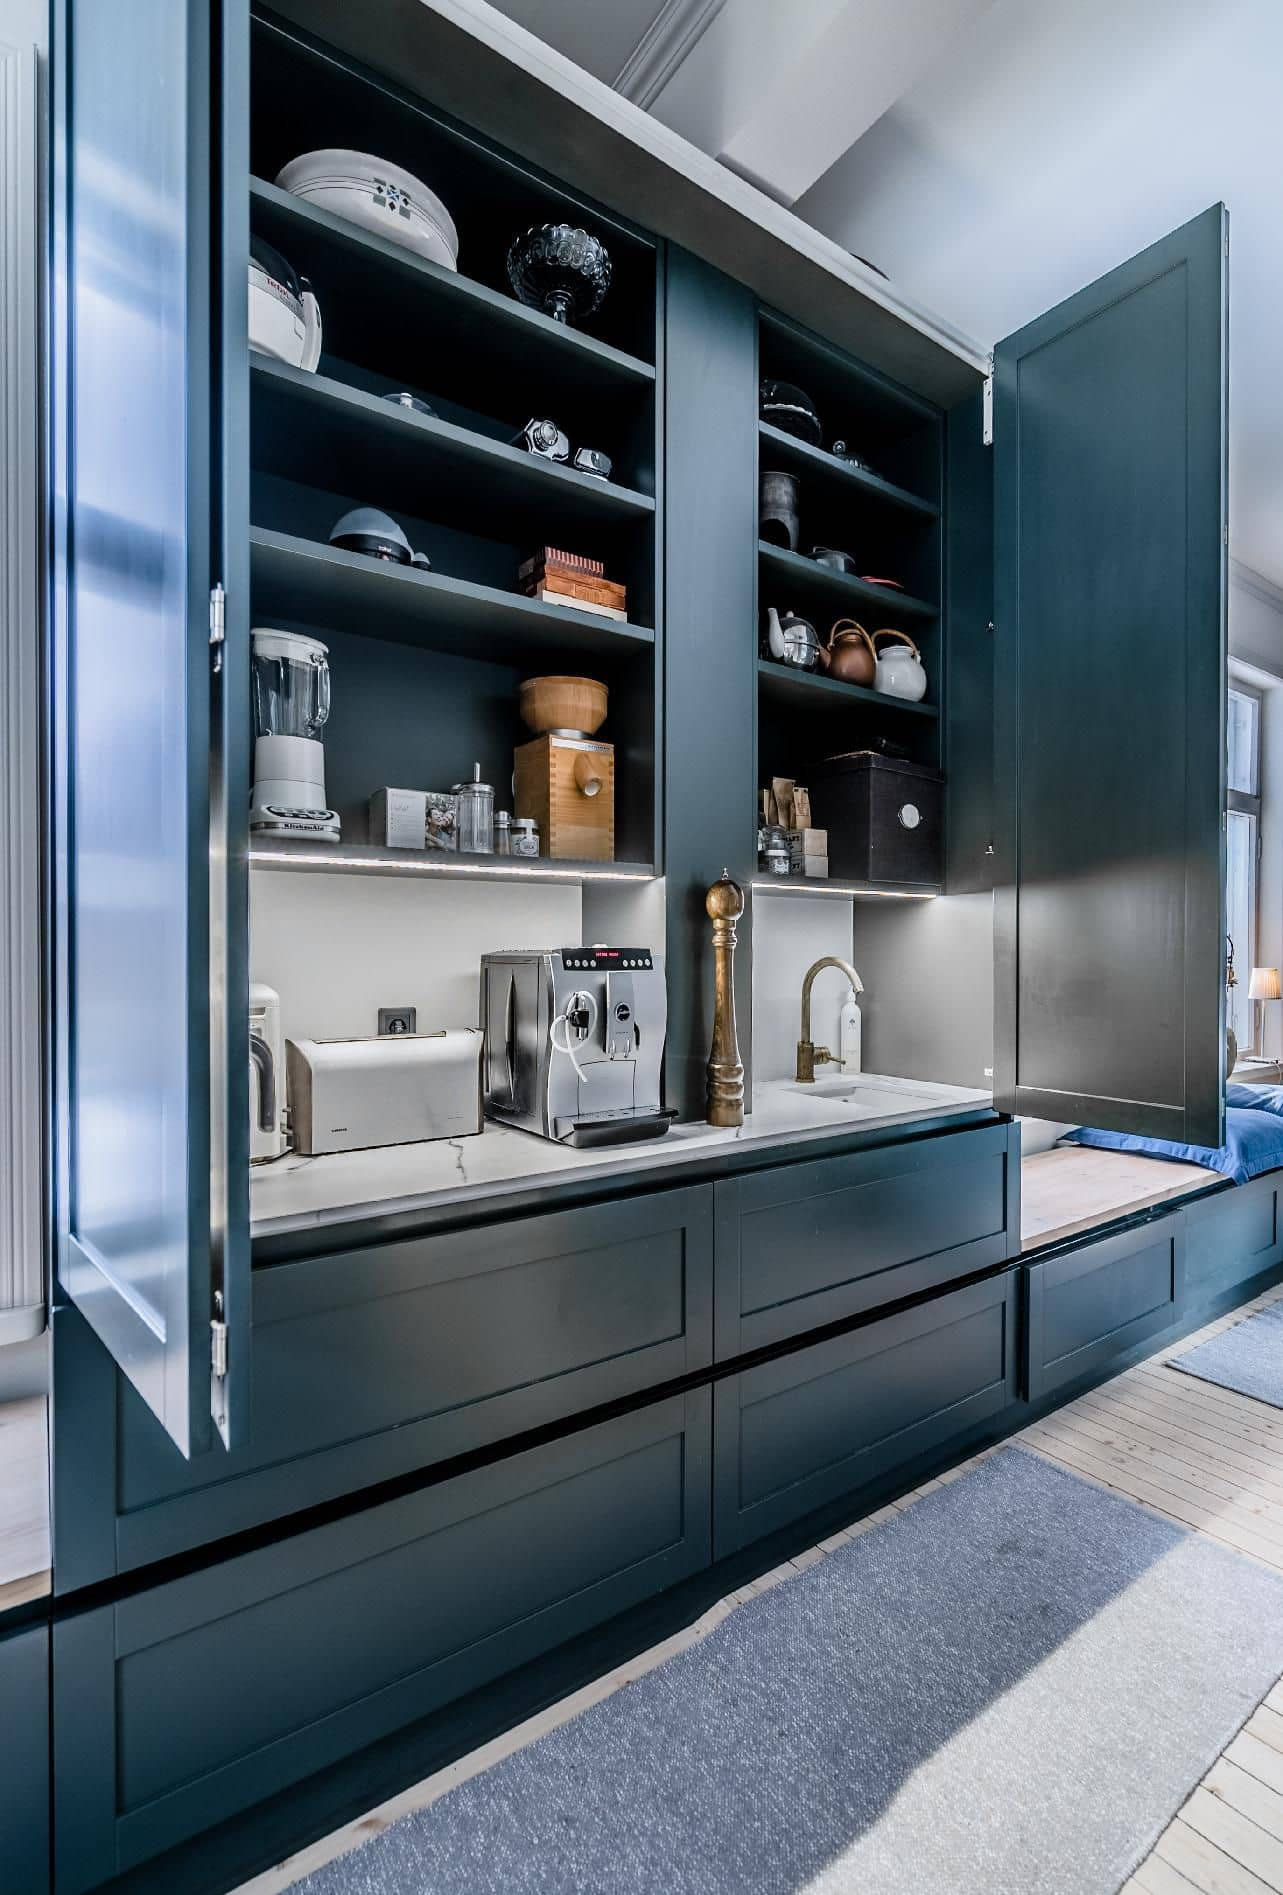 Appliance cabinet in the kitchen